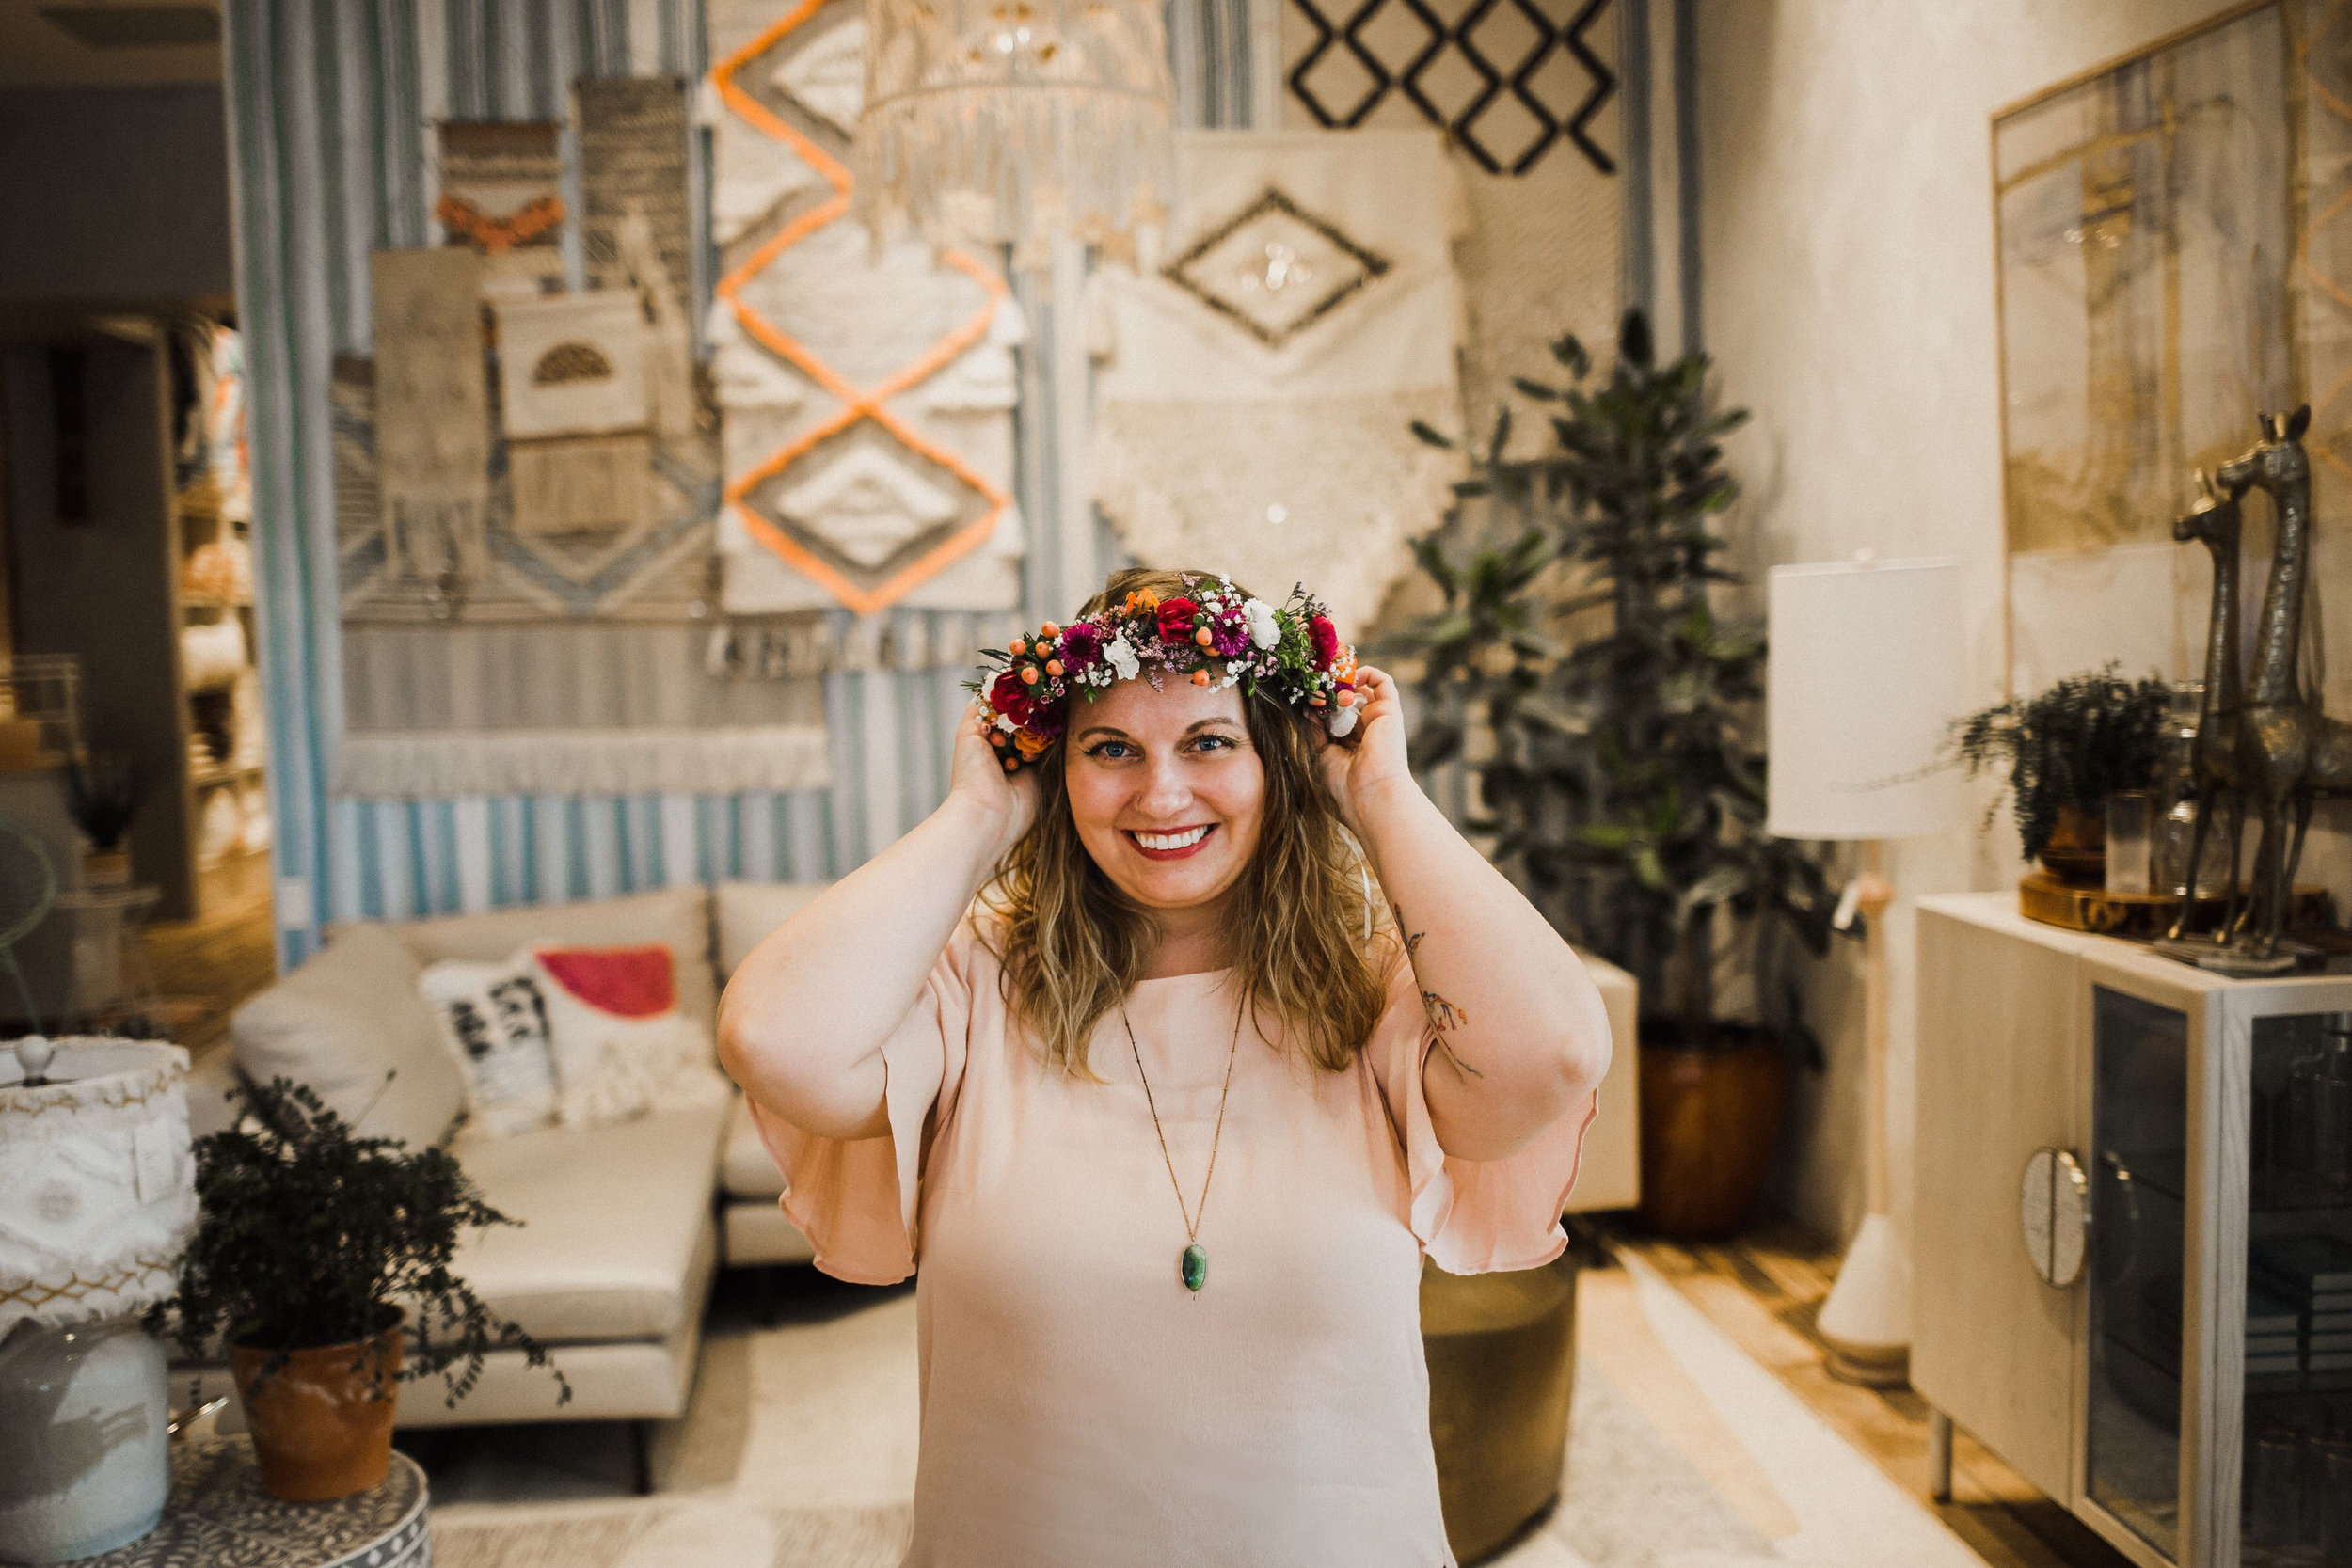 Megan Sauder - I believe we are all created with purpose, and that my purpose is to breathe life, joy, hope, healing, and freedom into people through the creative work that I do.